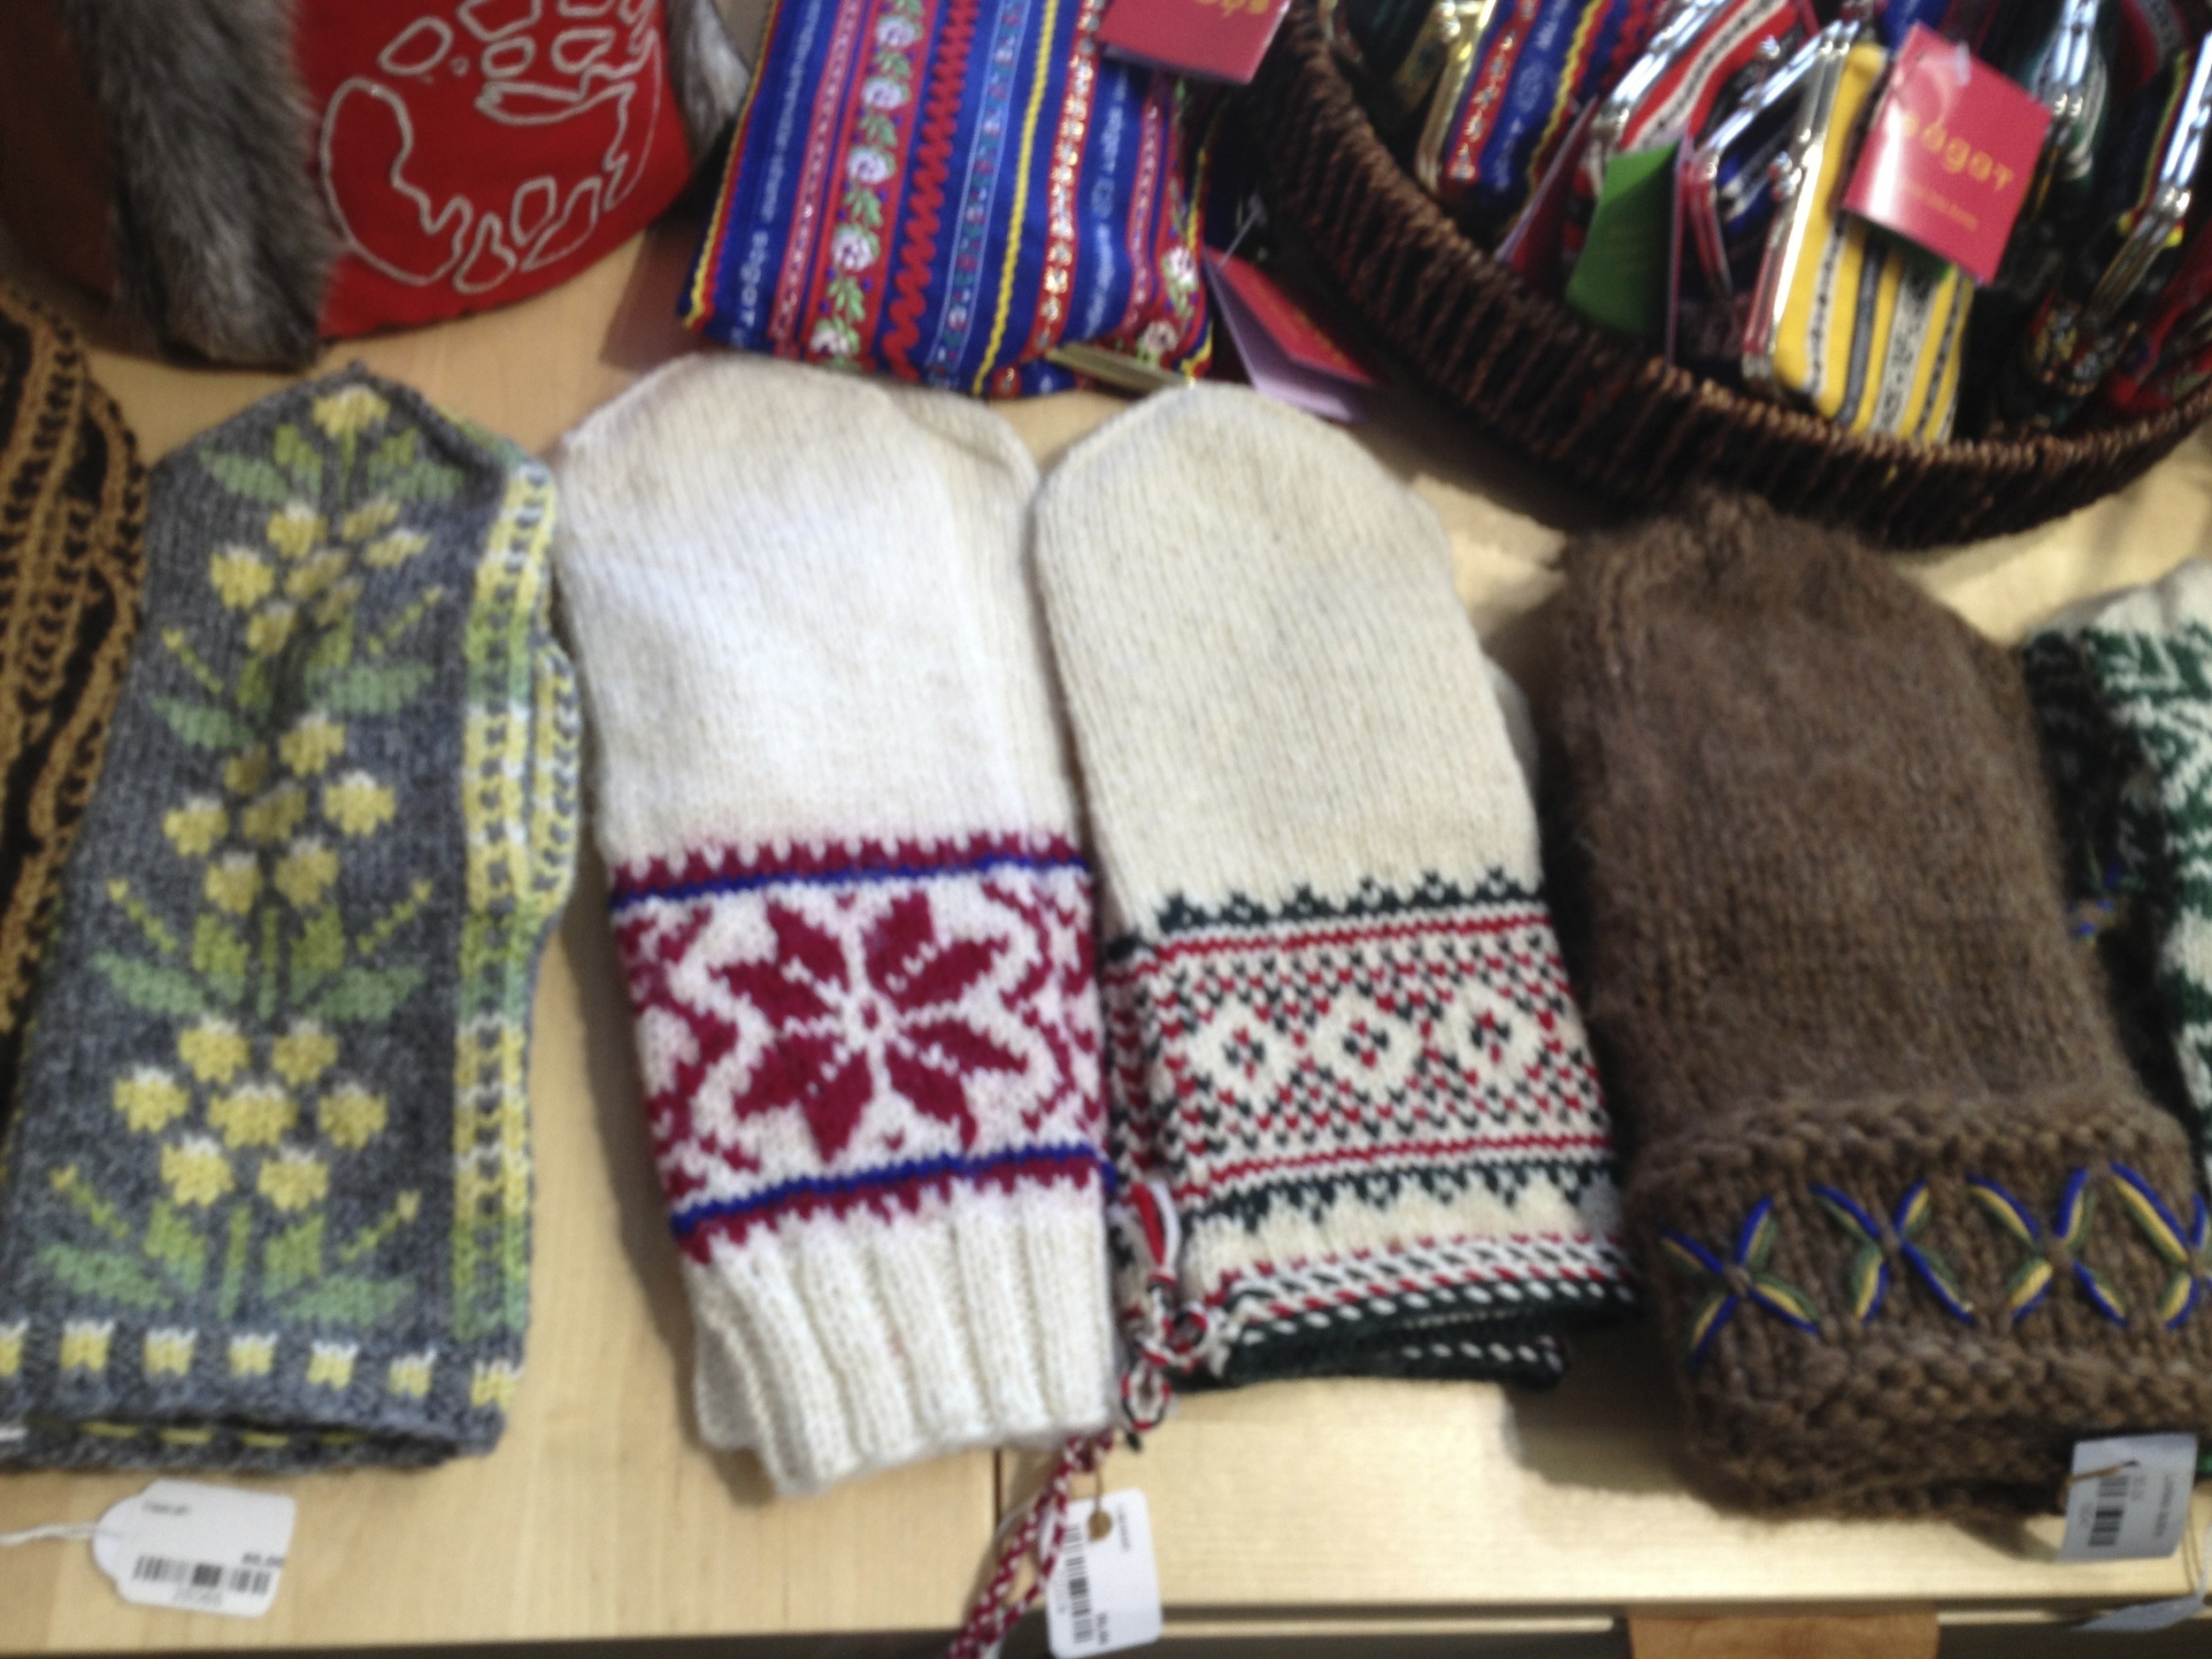 Finnish mittens, River Sámi mittens, Inari mittens, and Swedish Lovikka mittens